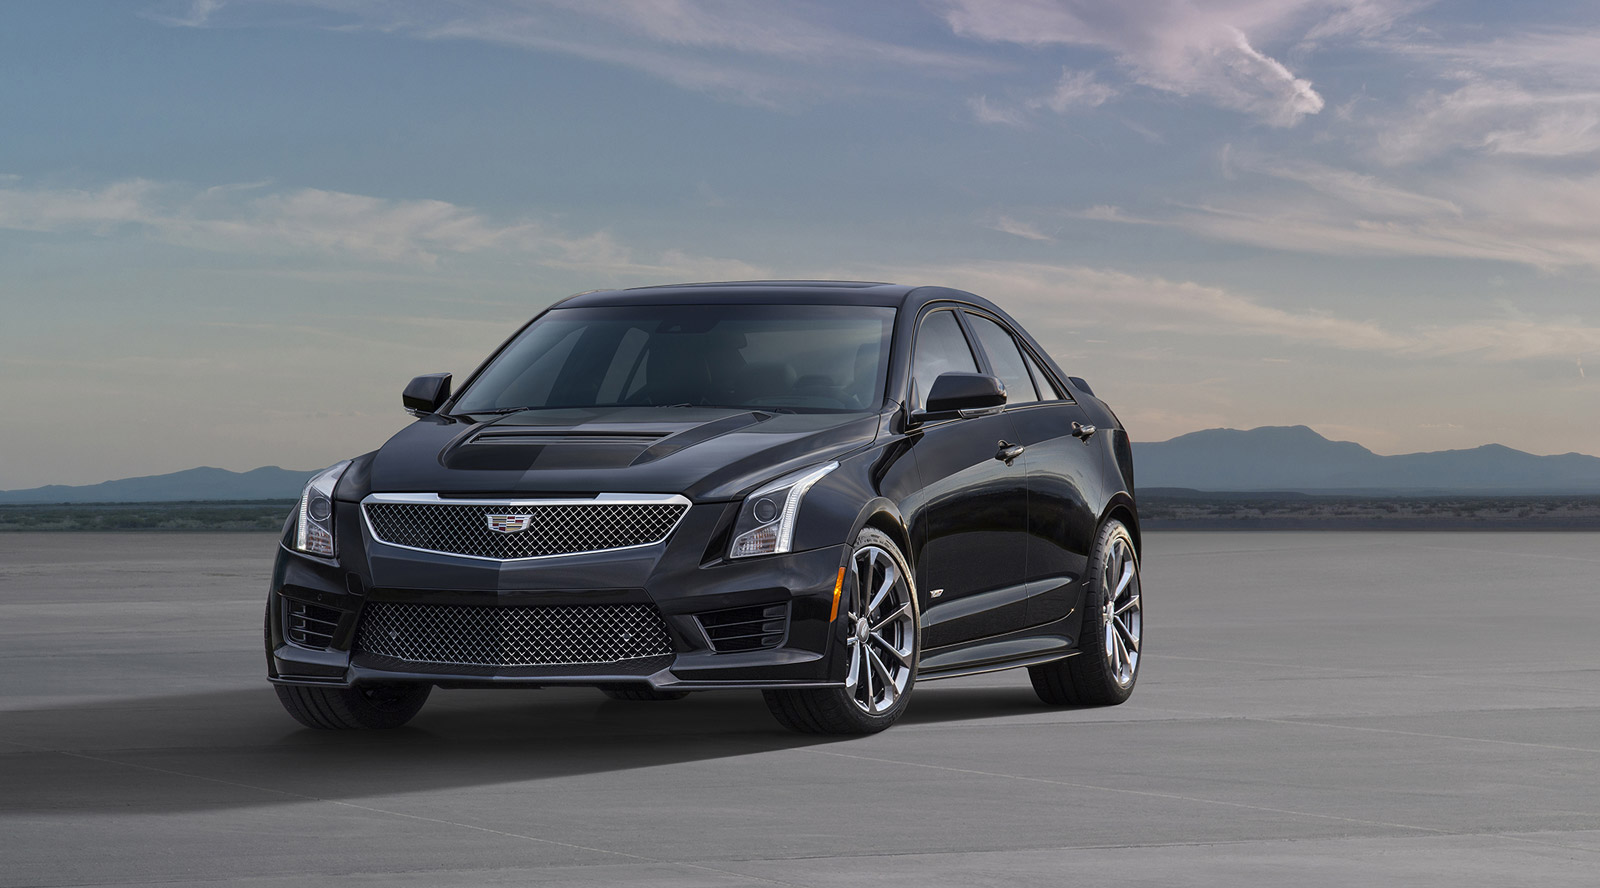 reviews coupe v cts carbon black fibre auto cadillac white canadian review ats front